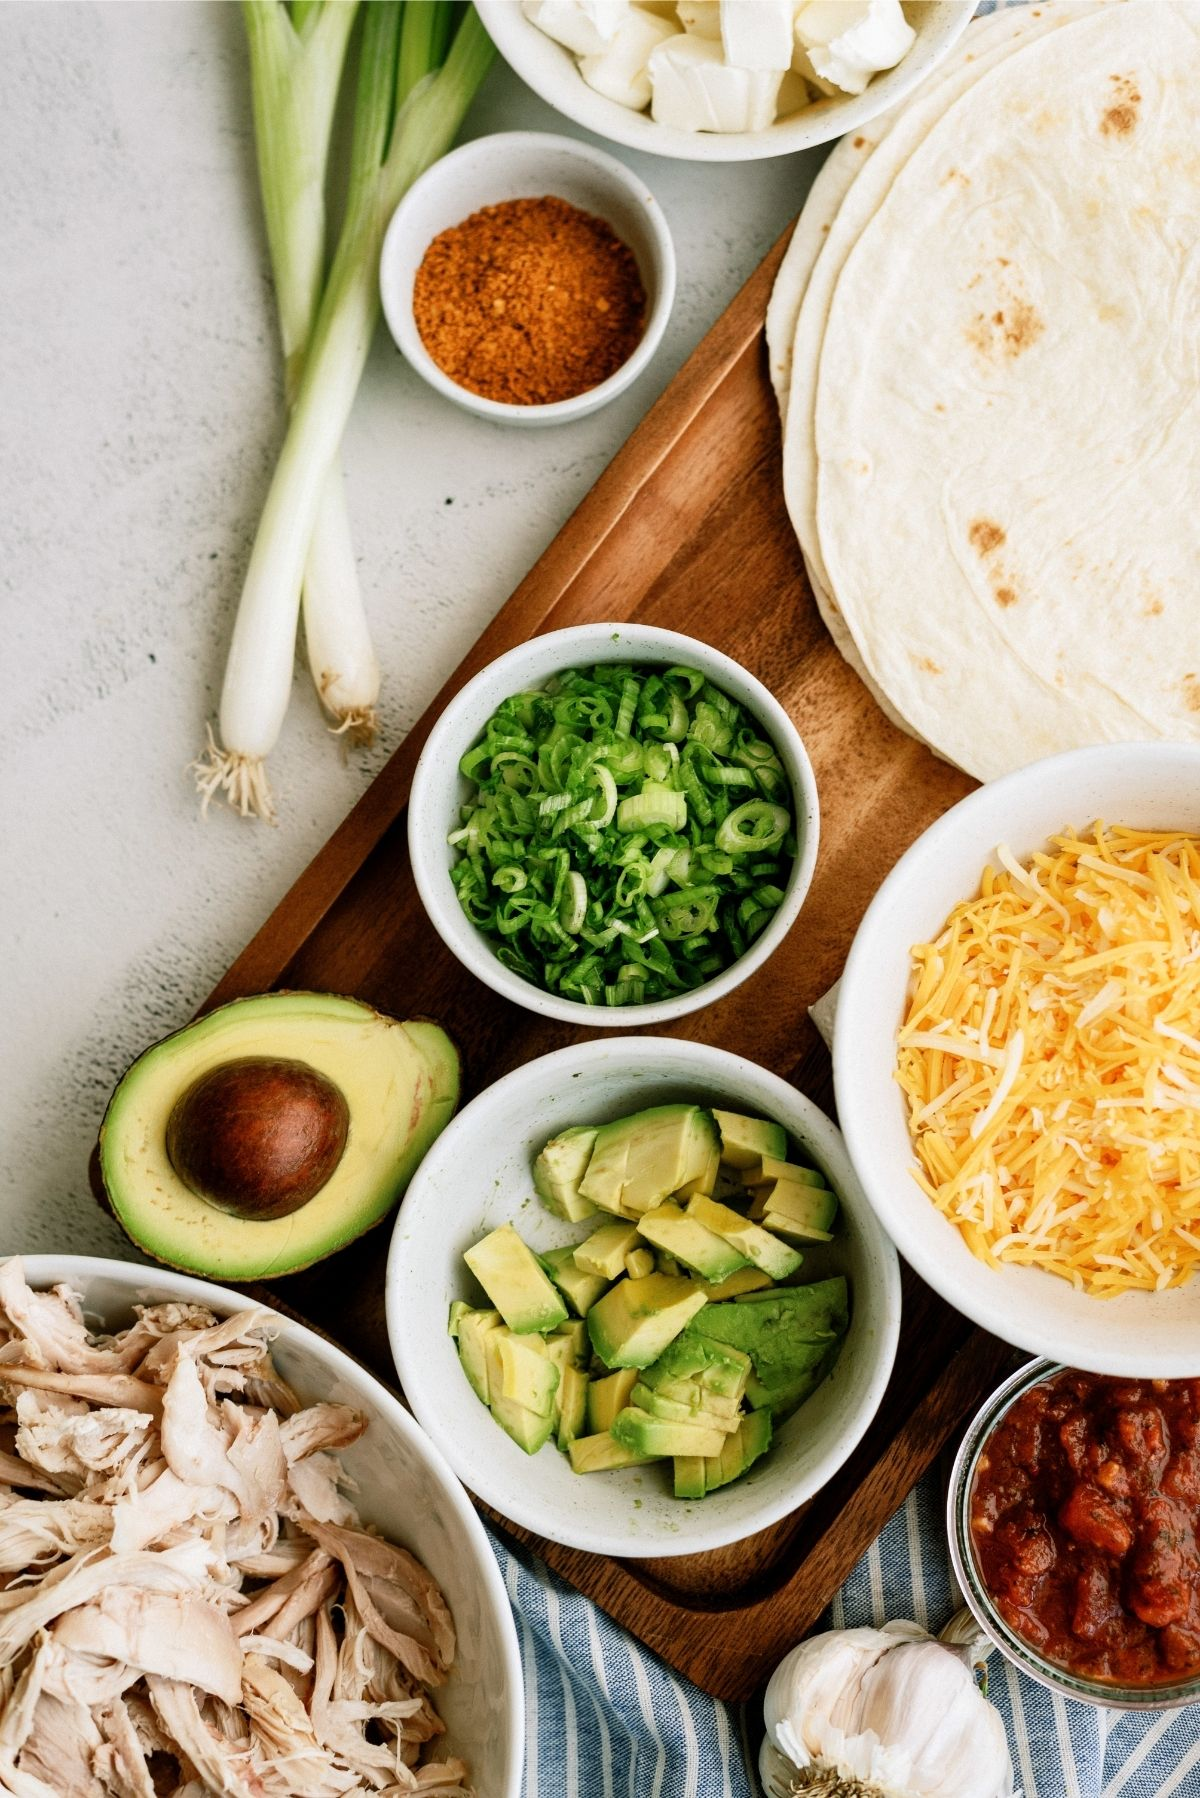 Ingredients for Chicken Taco Roll Ups